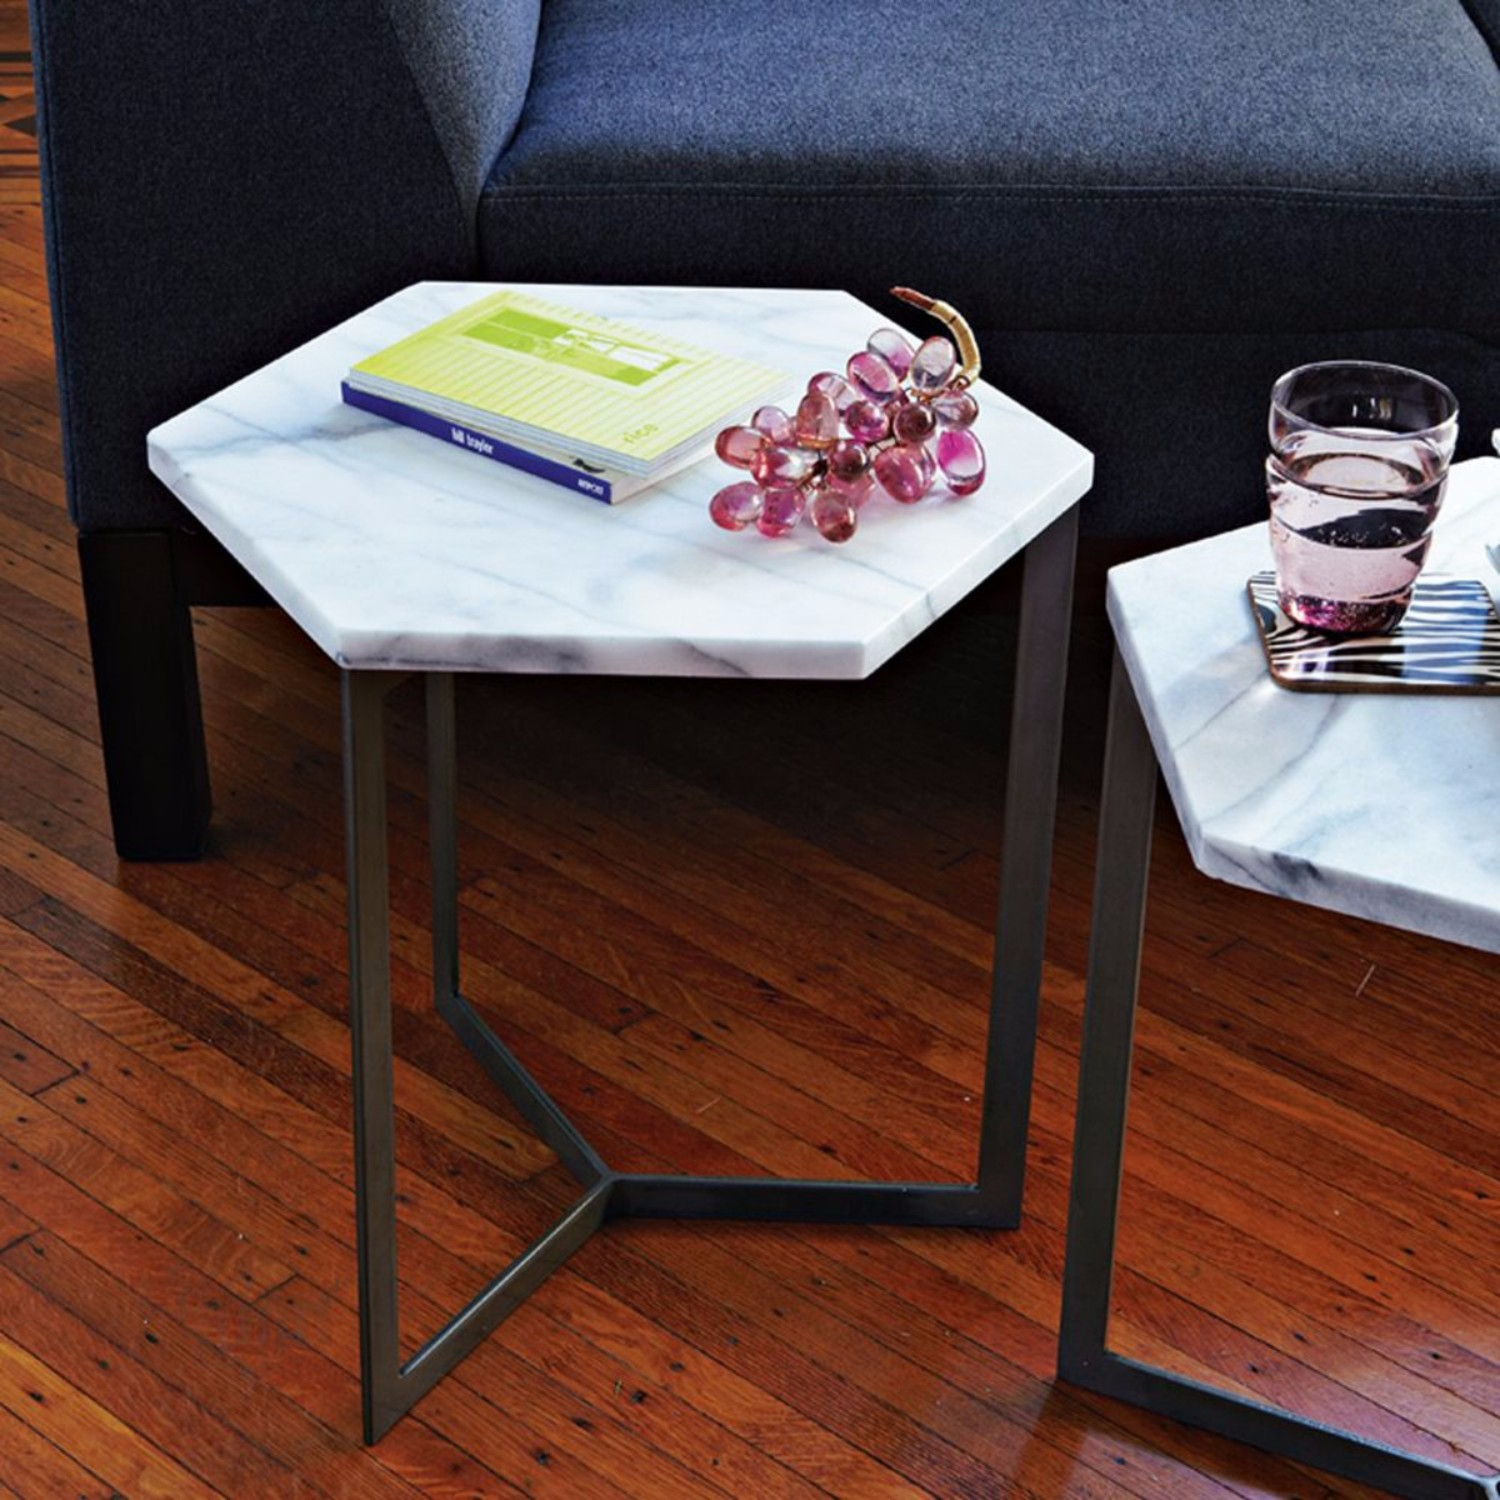 10 Inspiring Minimalist Tables Coffee Tables 10 Inspiring Minimalist Coffee Tables marble finish 10